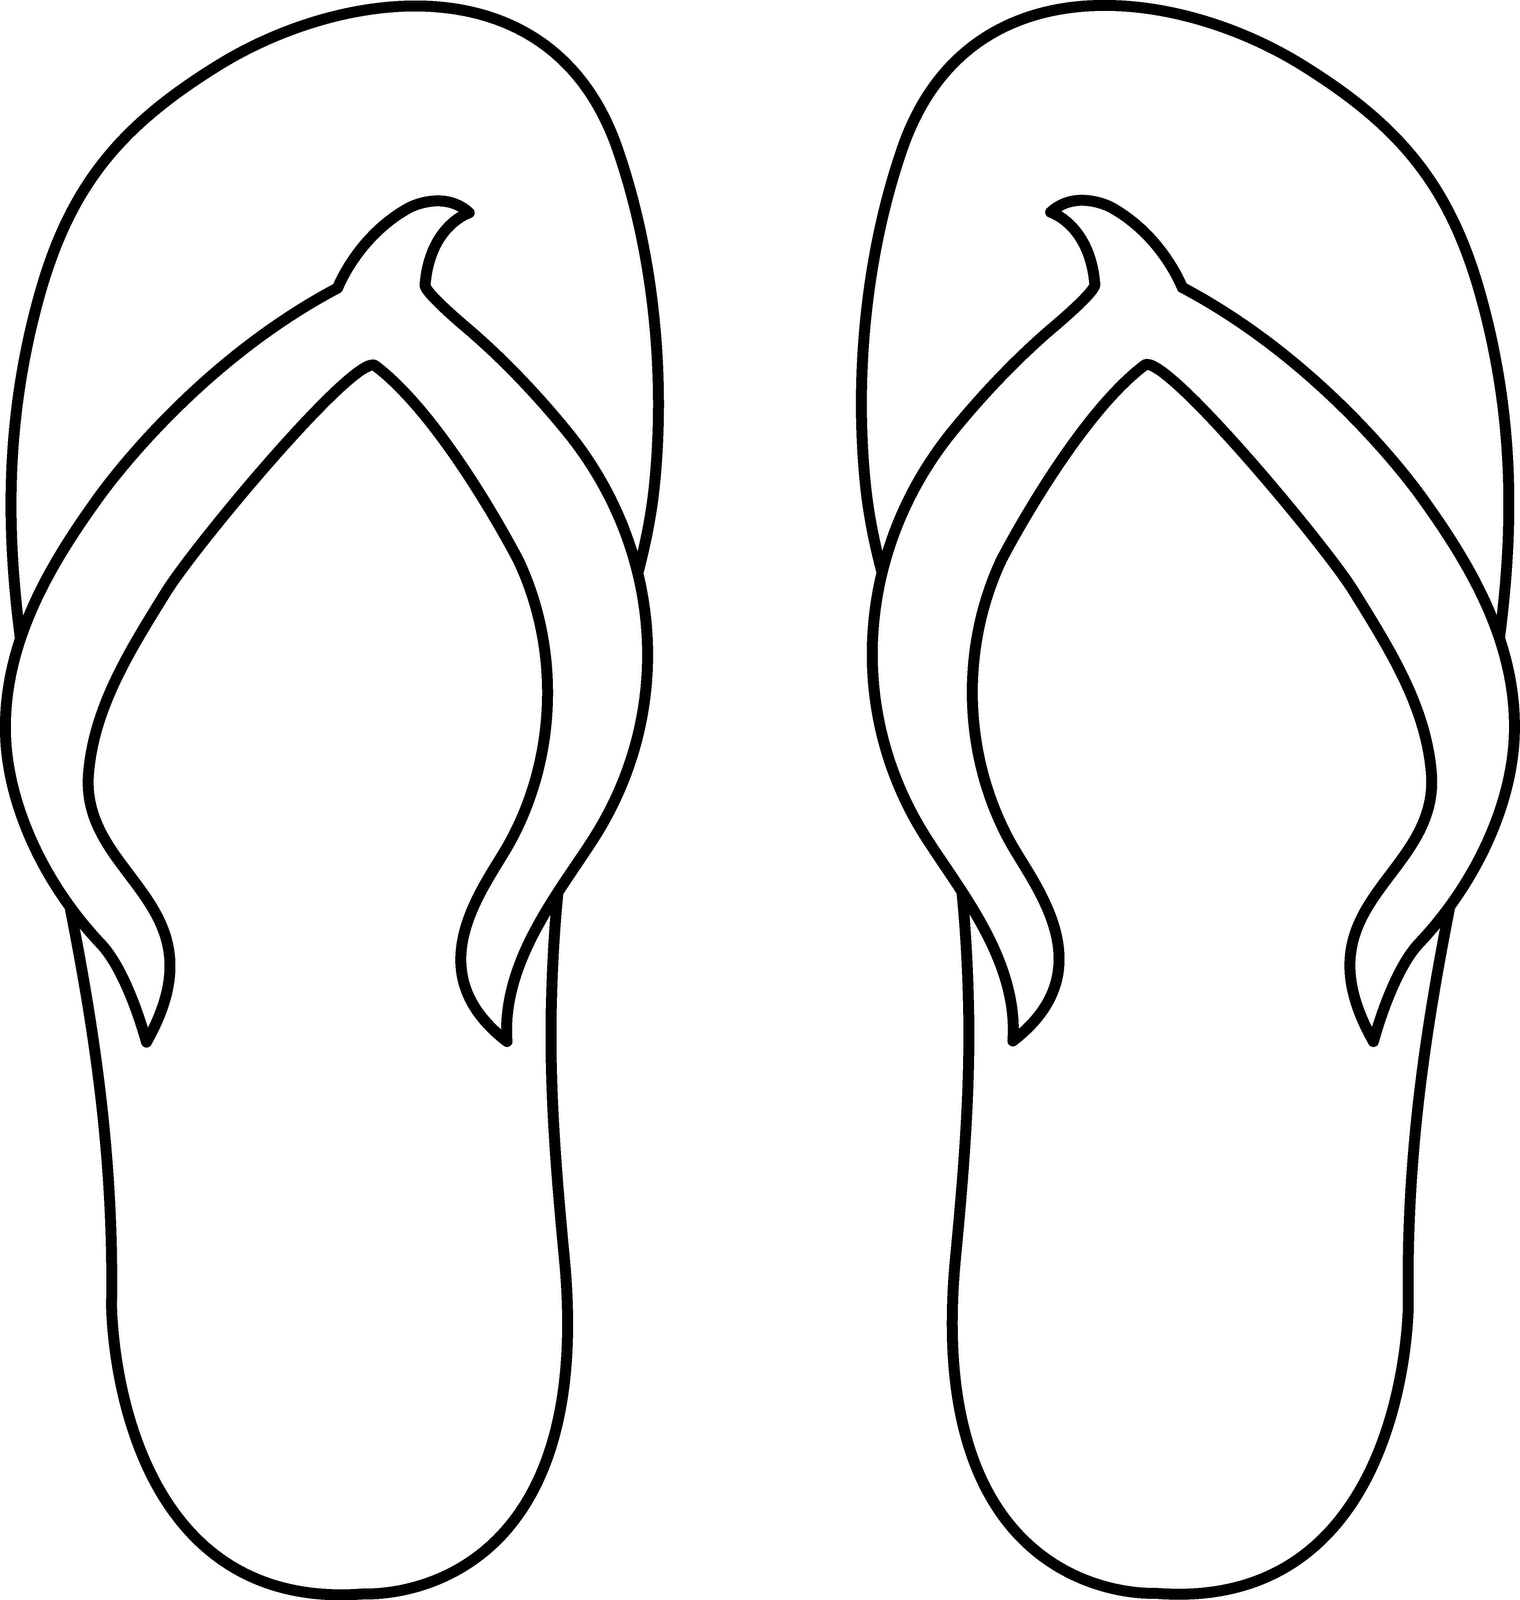 graphic about Printable Flip Flop Template titled Change Flop Routine Printable Change Flops Template